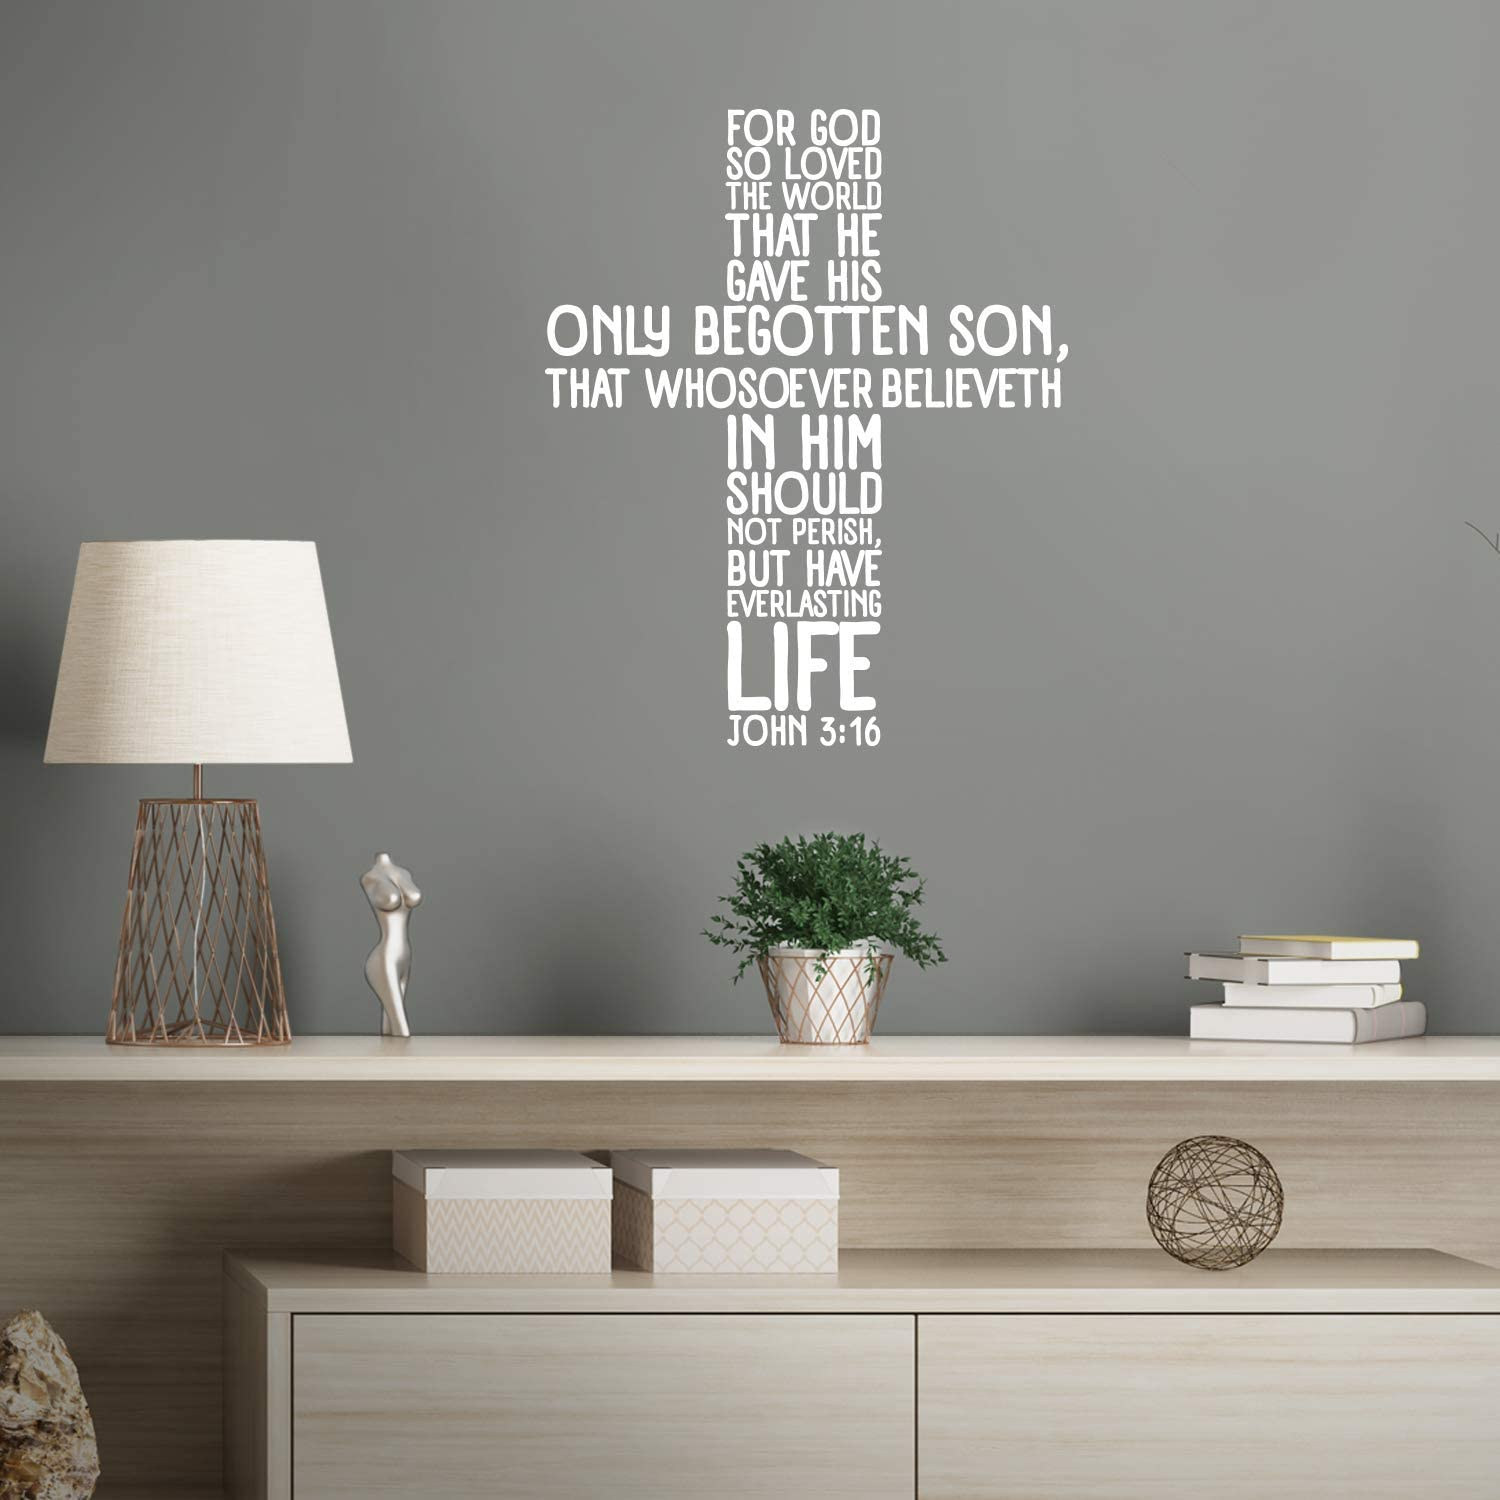 """Vinyl Wall Art Decal - John 3:16-28"""" X 23"""" - Religious Bible Verse Quote Sticker for Bedroom Living Room Kids Room Office Church Decor (White)"""